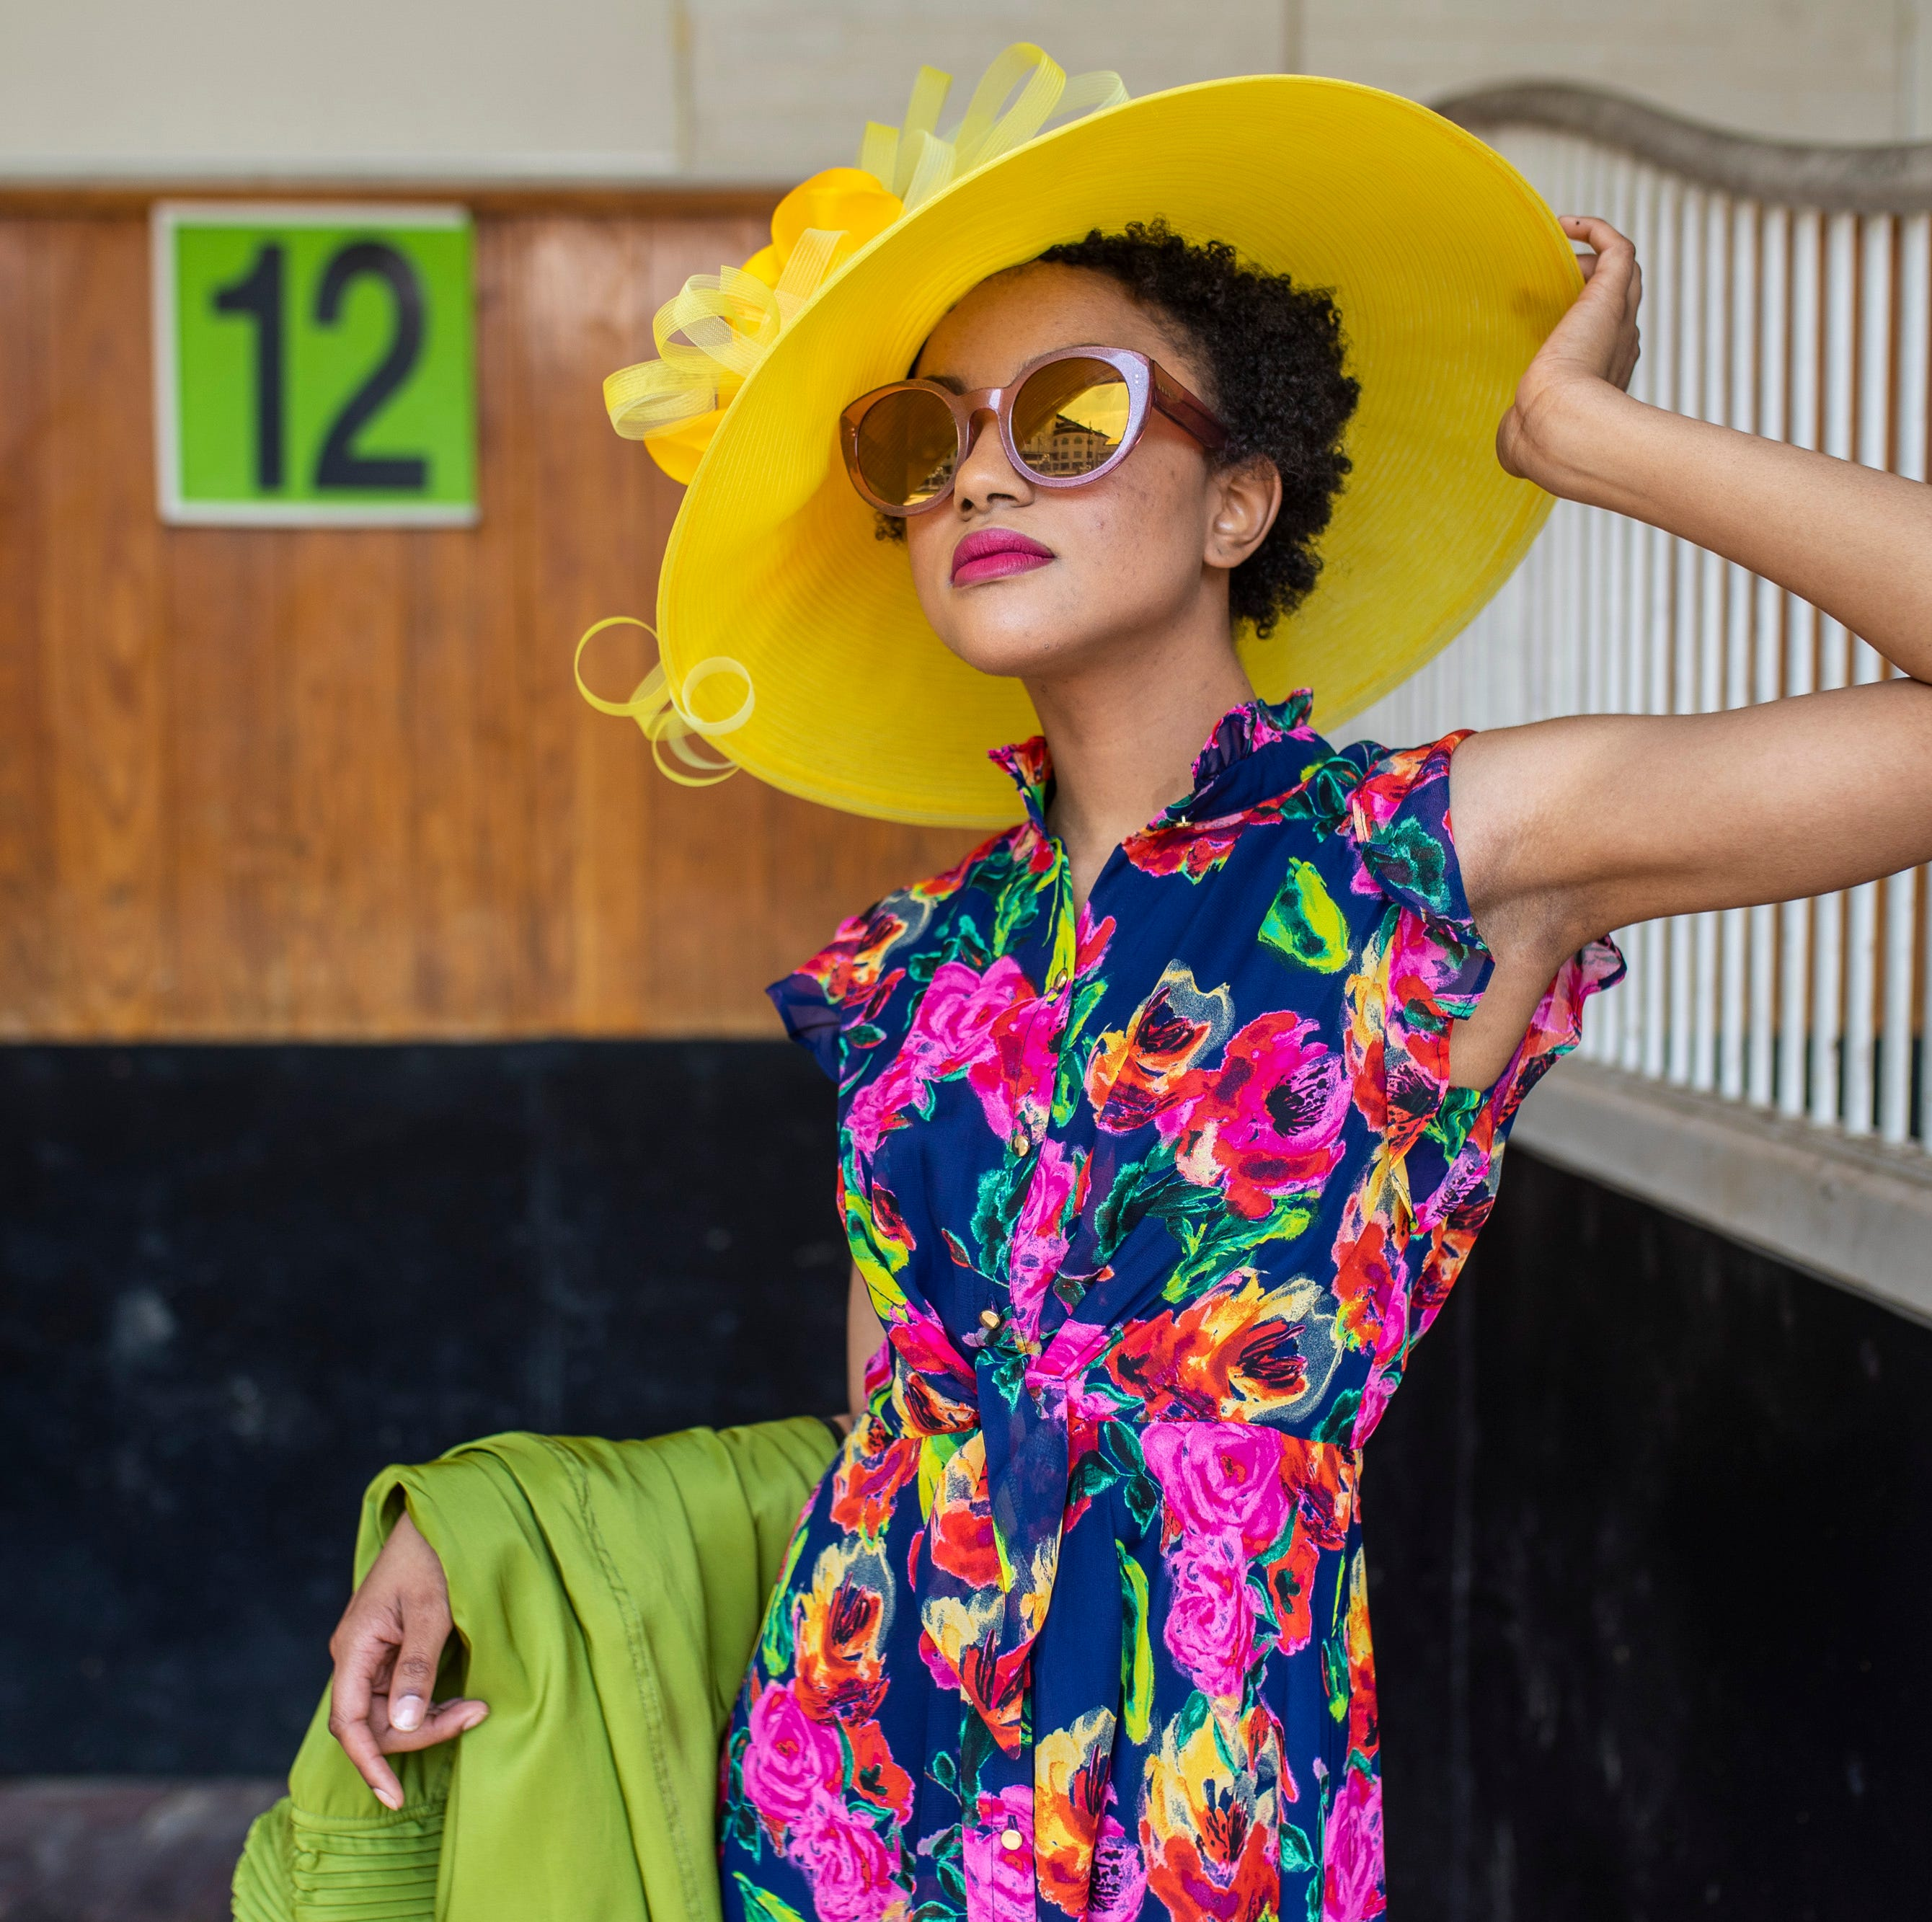 Wondering what to wear to the Kentucky Derby? These looks are your best bets